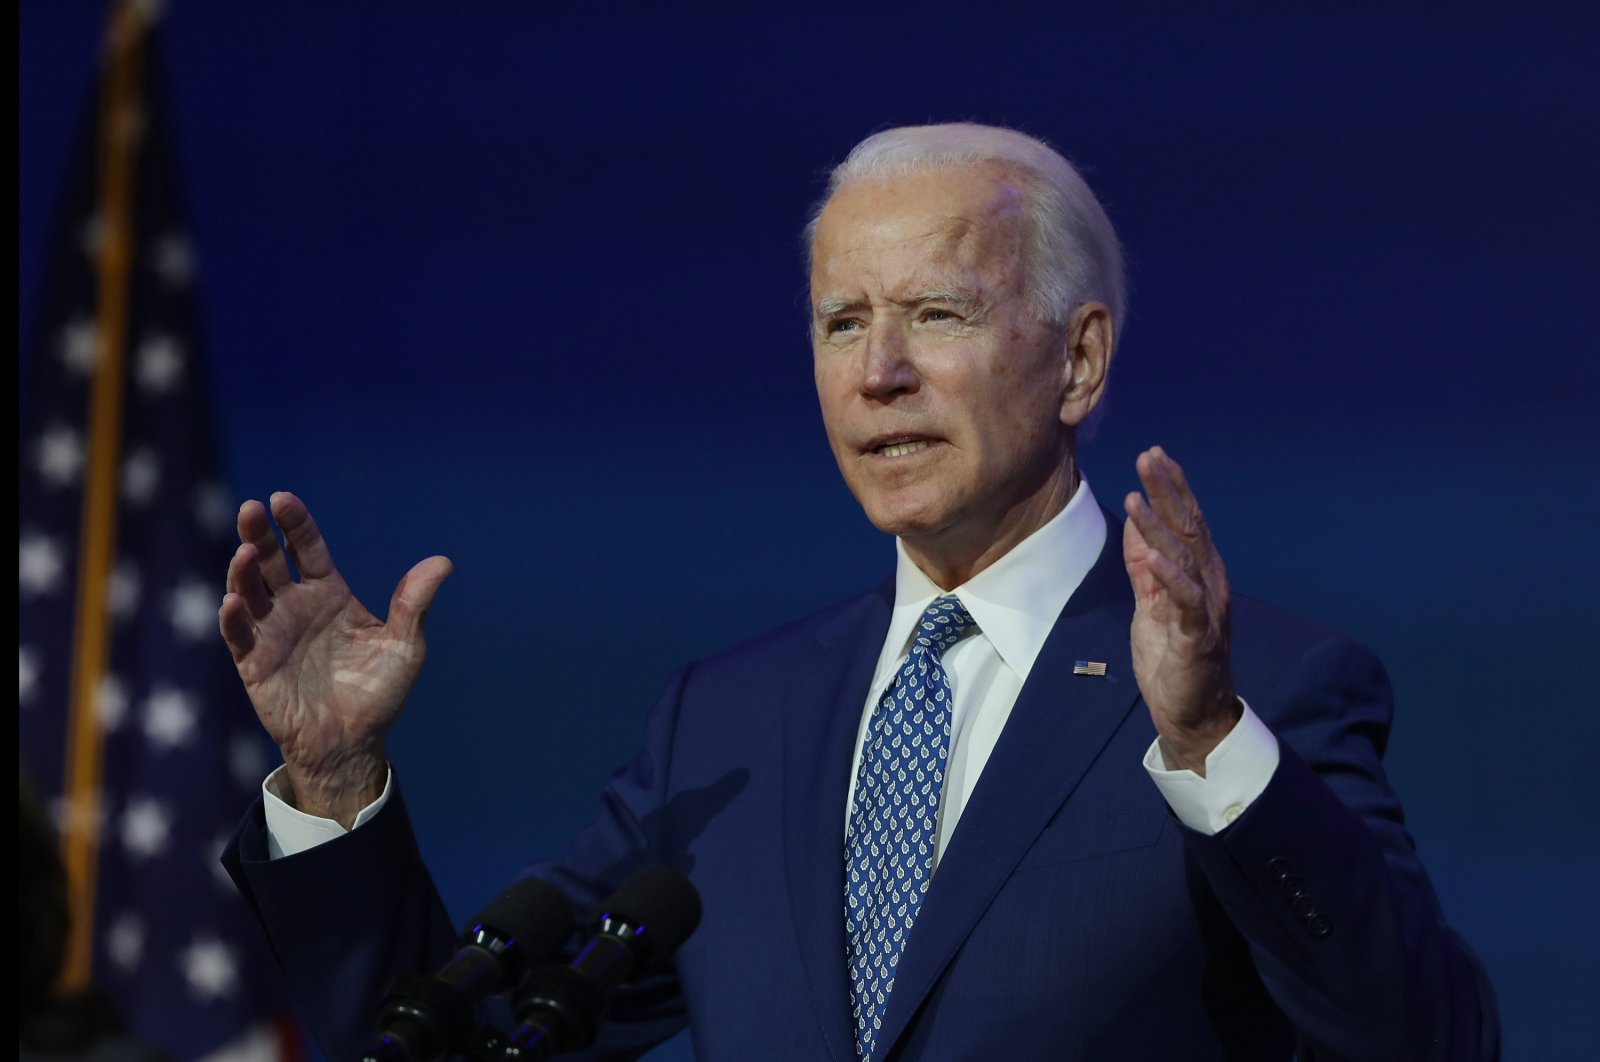 President-elect Joe Biden speaks to the media after receiving a briefing from the transition COVID-19 advisory board at the Queen Theater in Wilmington, Delaware, U.S., Nov. 9, 2020. (AFP Photo)